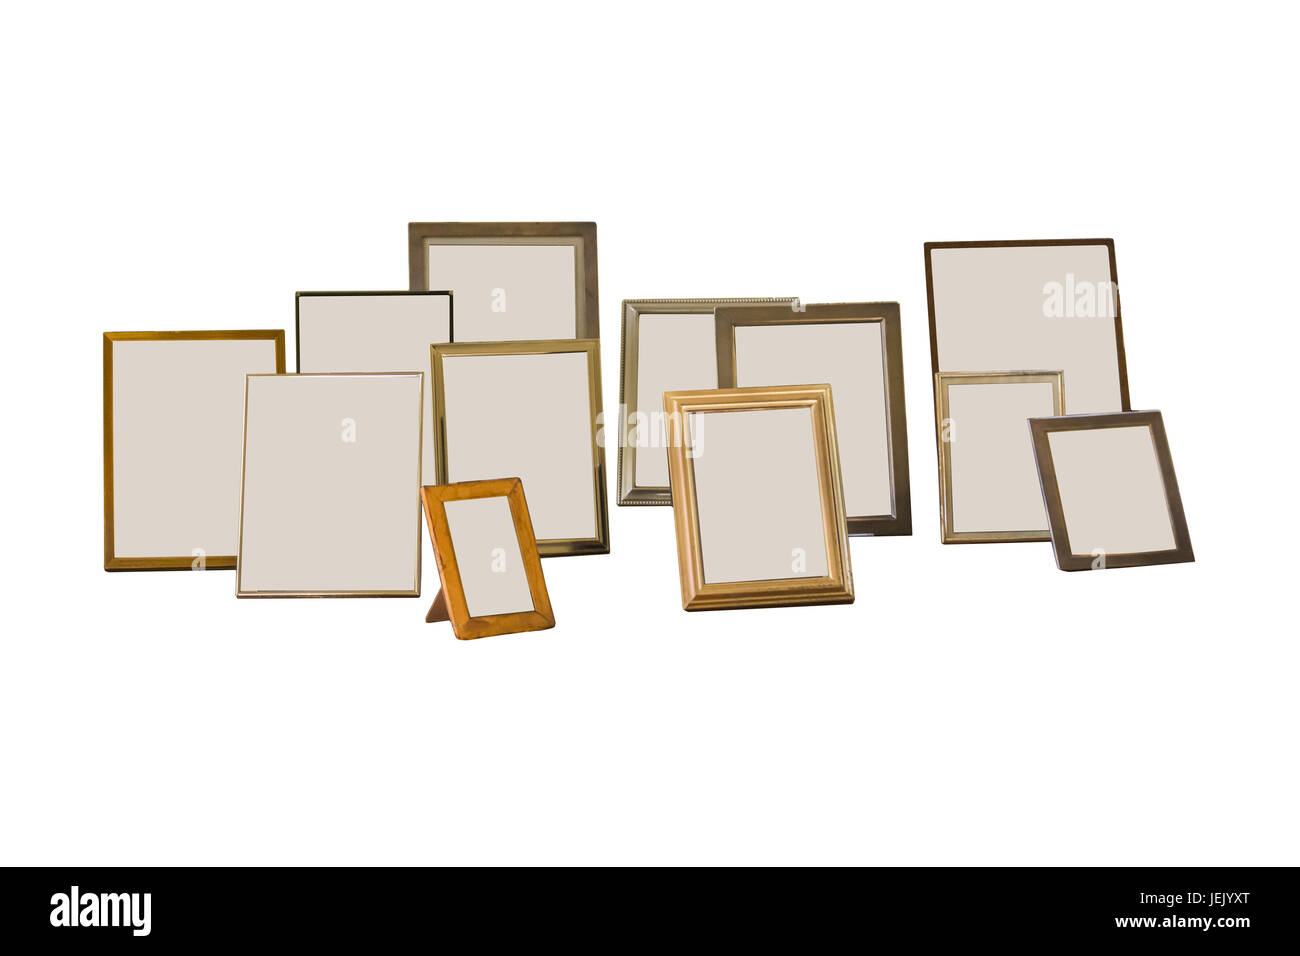 Isolated Portrait Photo Frames - Stock Image